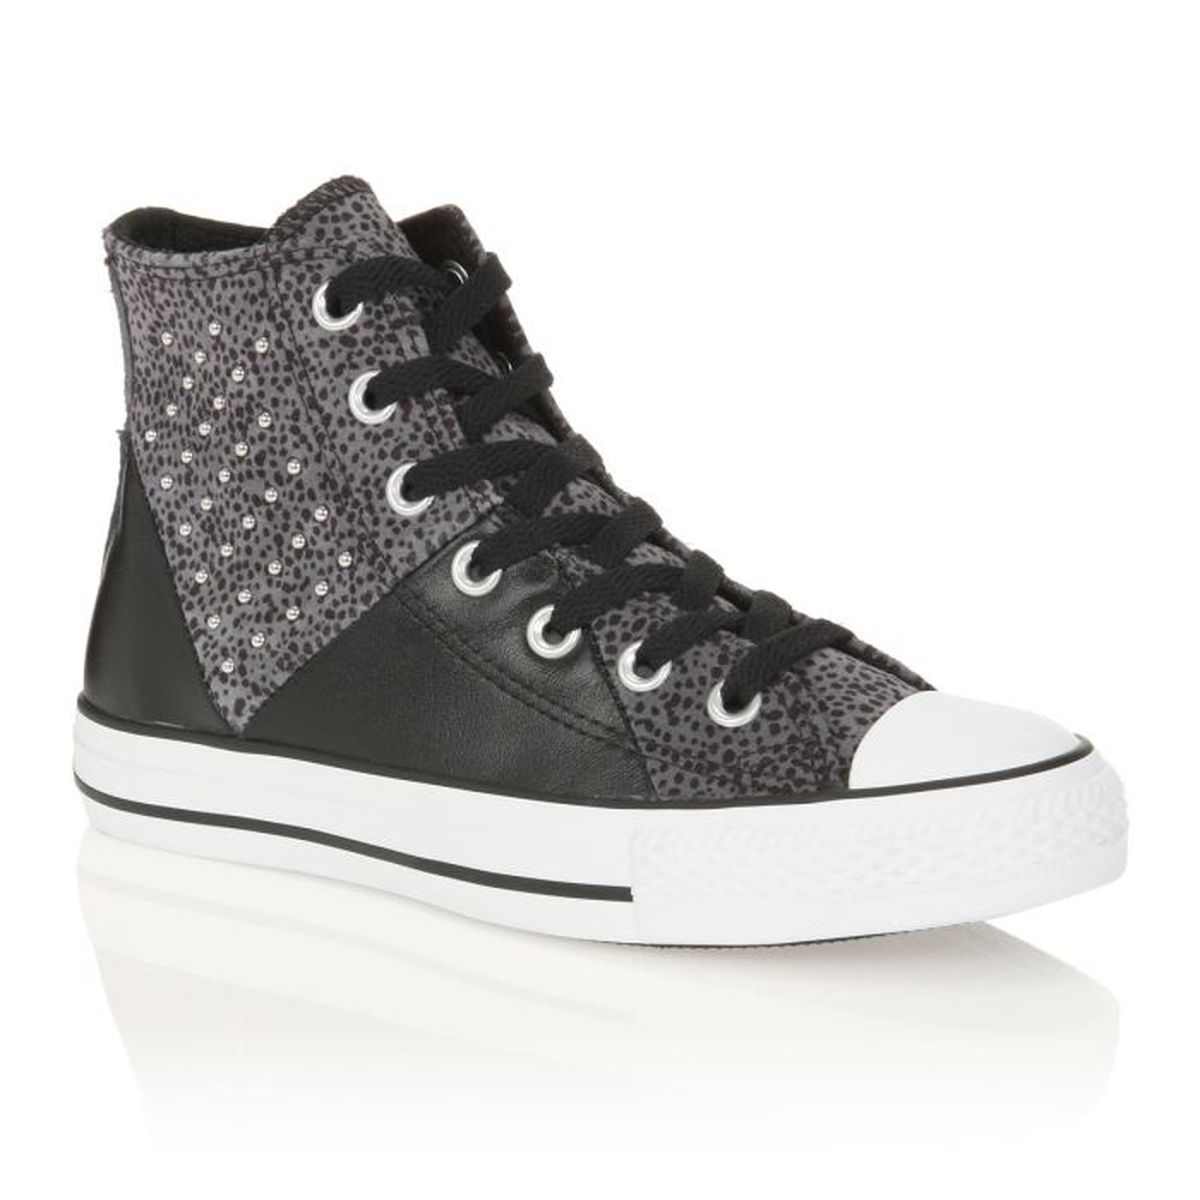 converse baskets ct multi panel cuir femme femme noir gris achat vente converse baskets ct. Black Bedroom Furniture Sets. Home Design Ideas